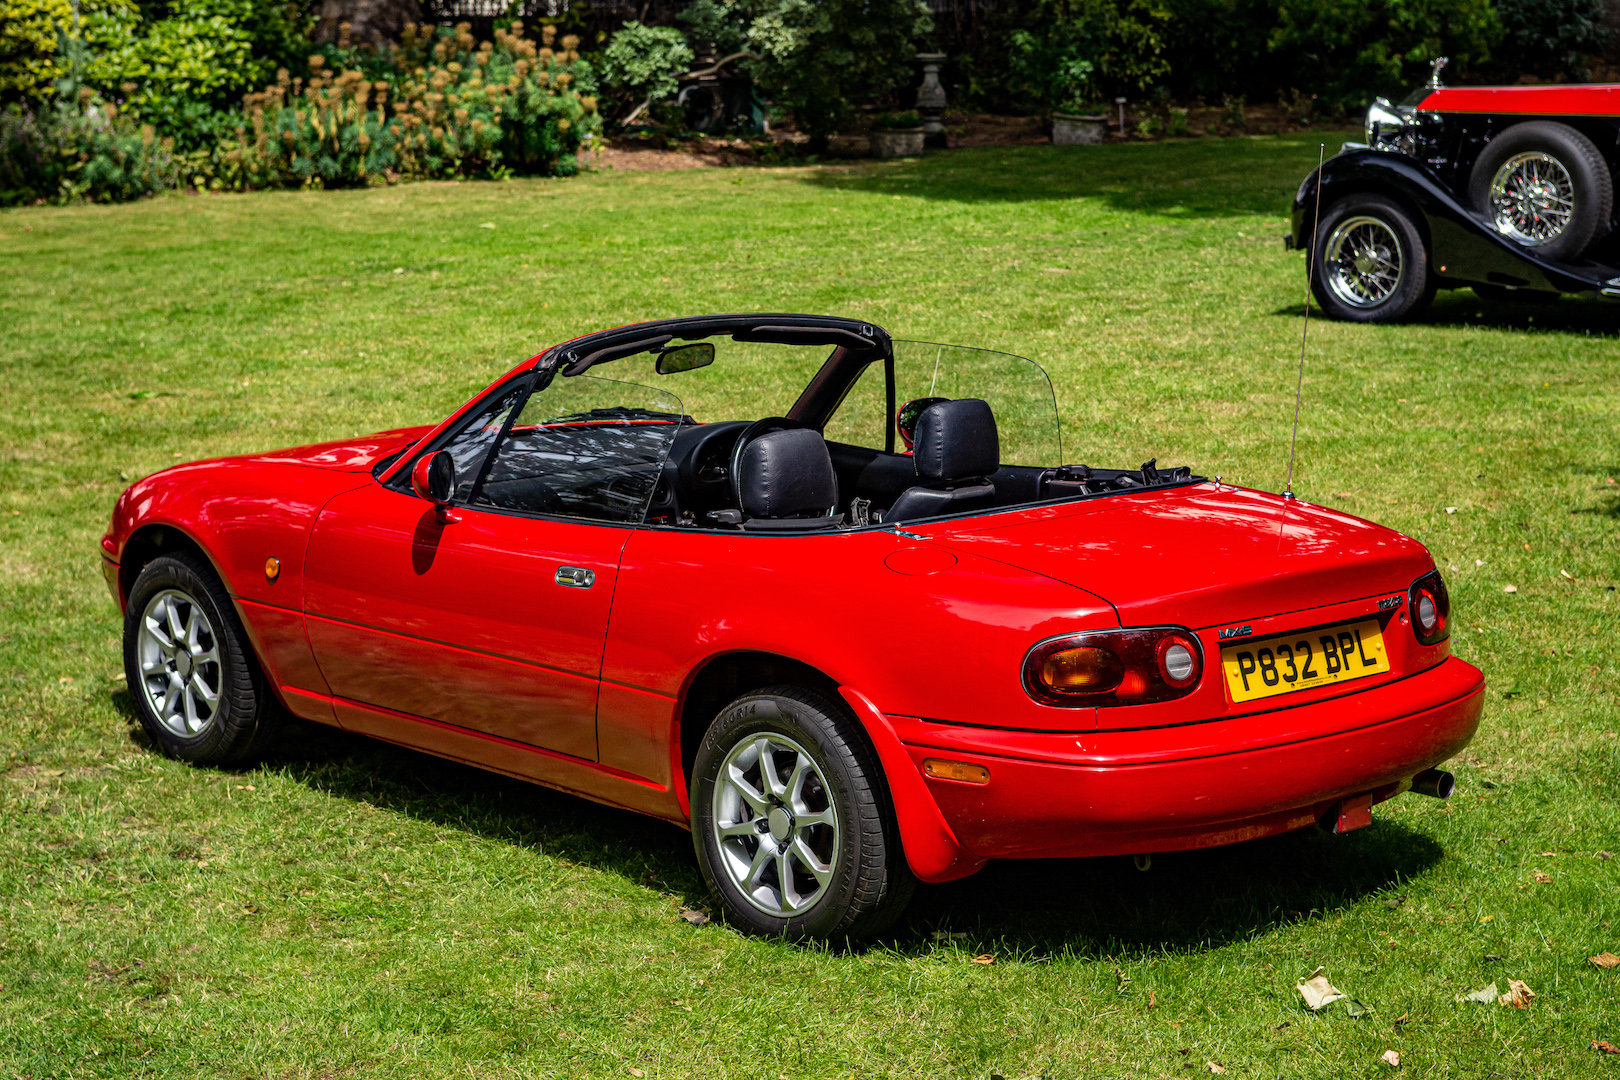 1996 Newly-restored Mazda MX5 Mk 1, low mileage for age For Sale (picture 2 of 6)